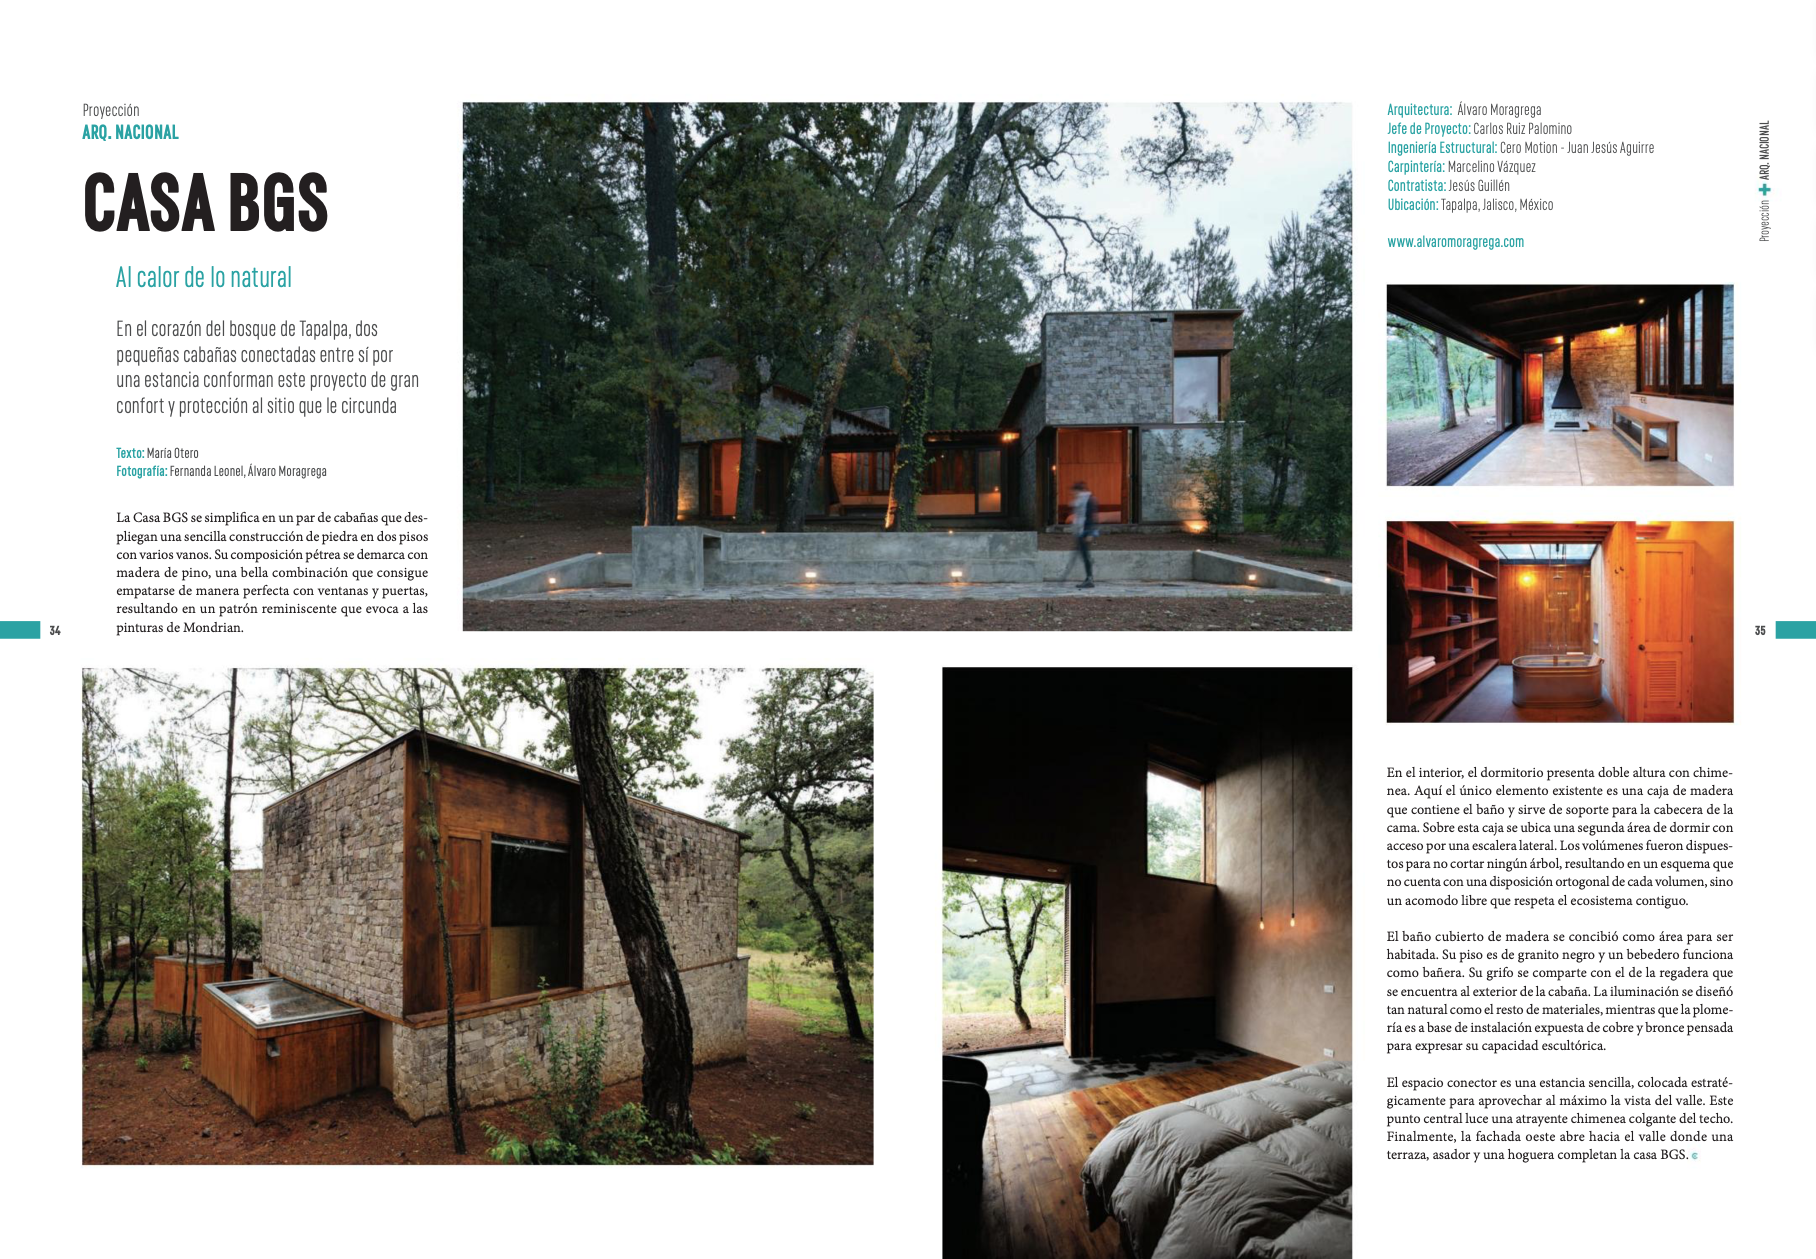 C+T dedicates a few pages to Casa BGS